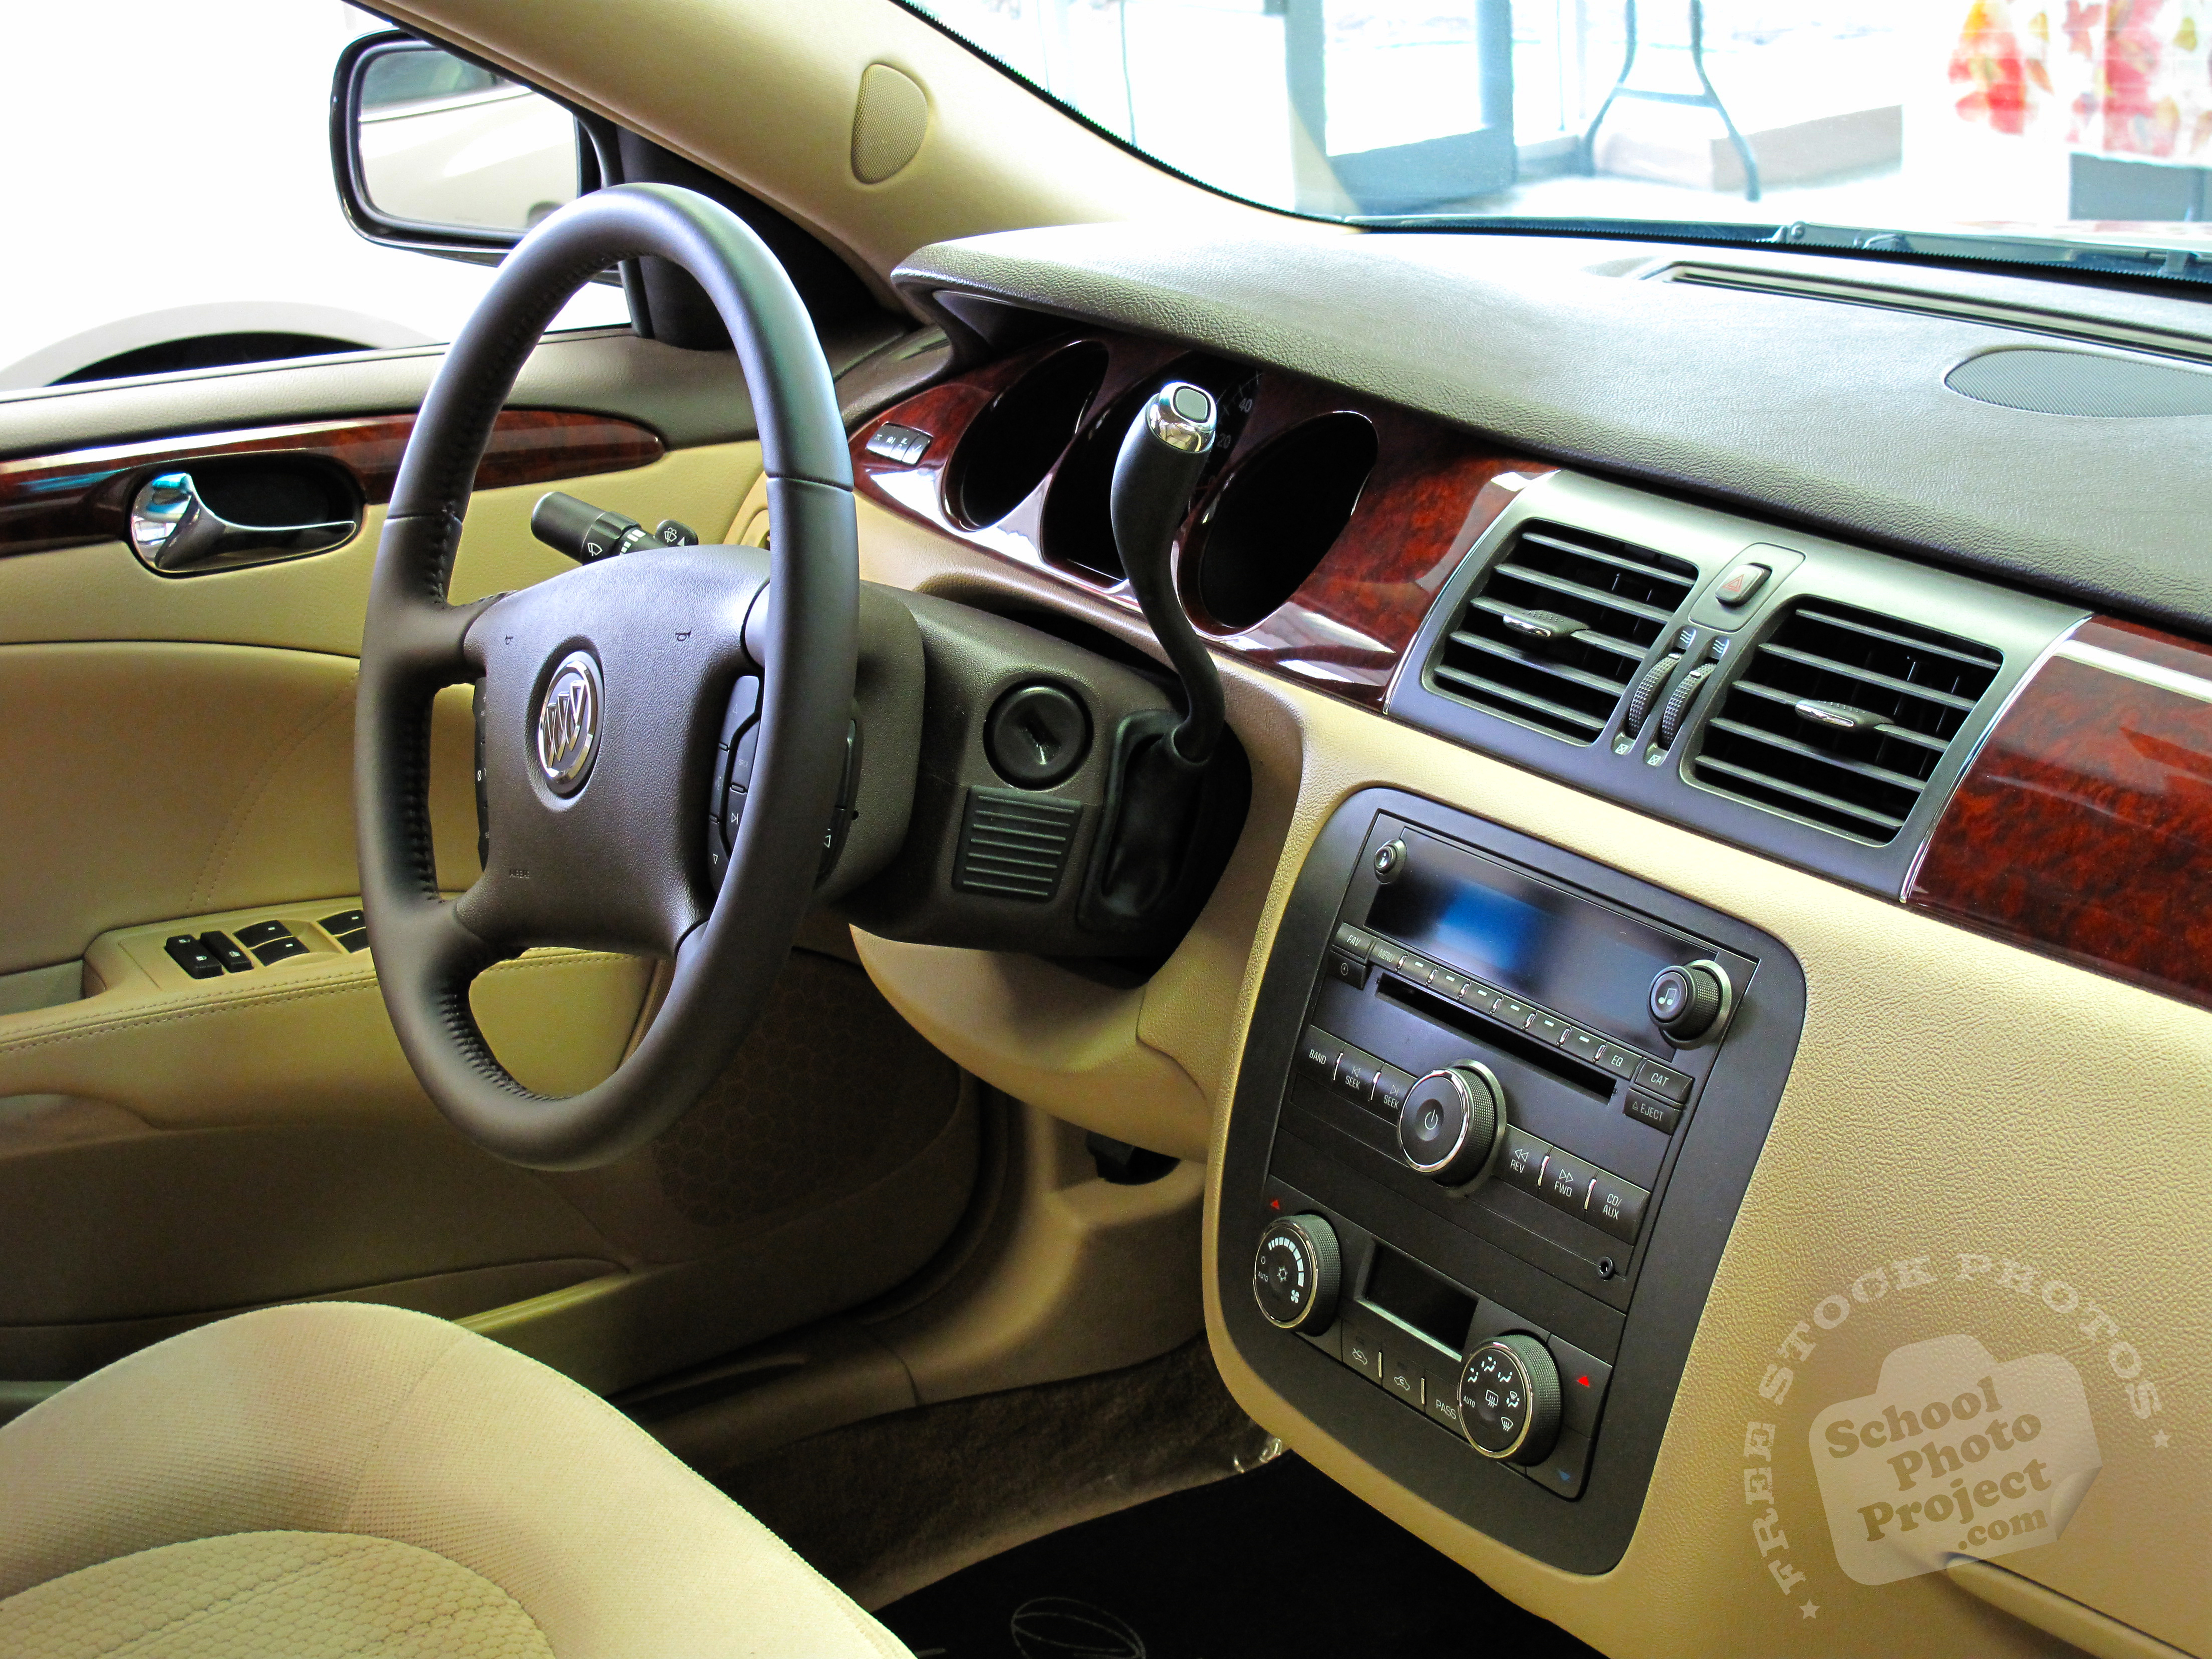 Car Dashboard Free Stock Photo Image Picture Buick S Dashboard Royalty Free Car Stock Photography